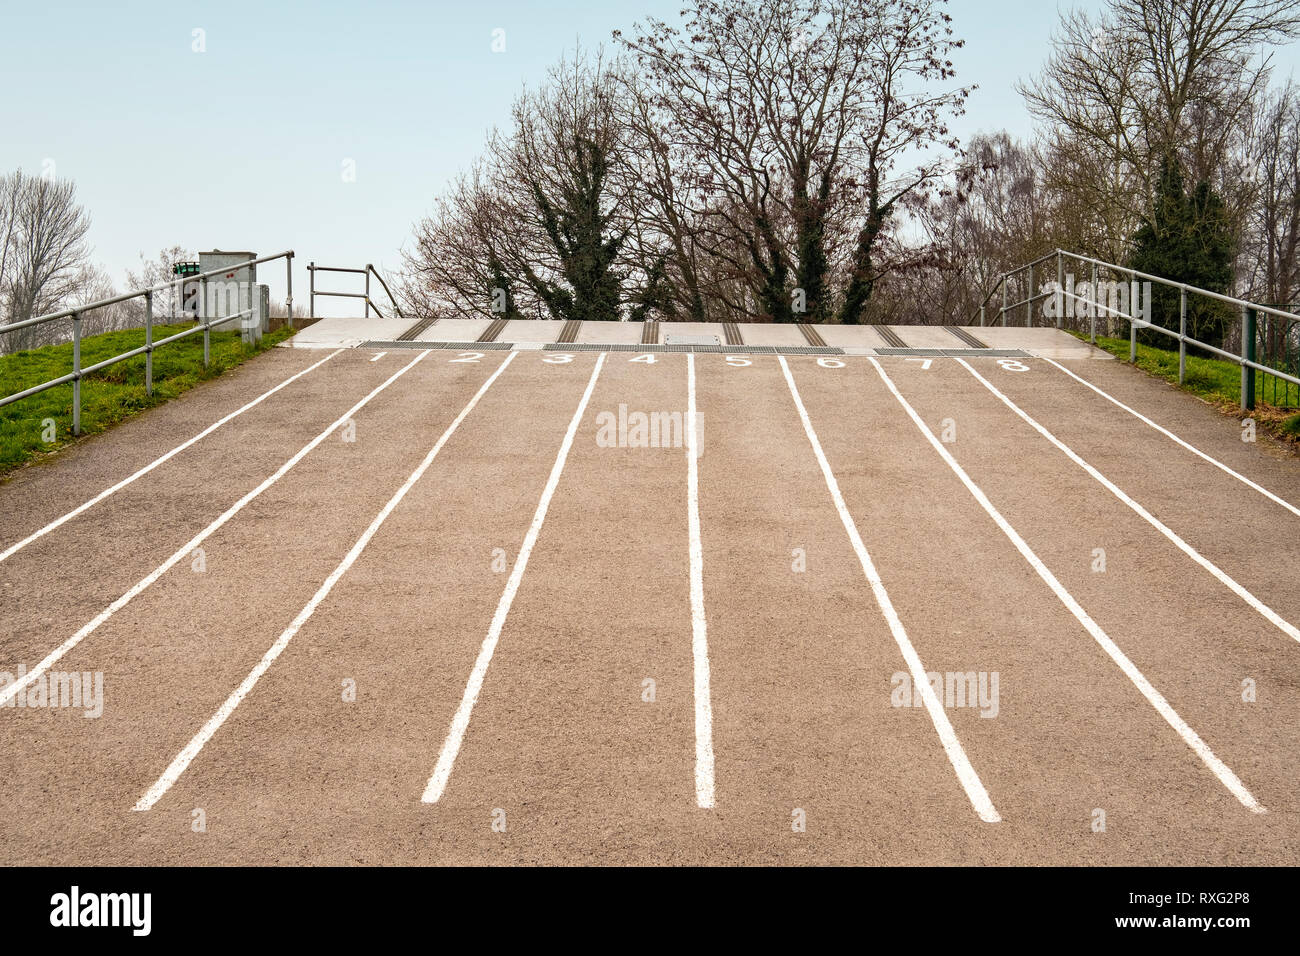 BMX starting grid at Tipkinder park part of Queens park in Crewe Cheshire UK - Stock Image